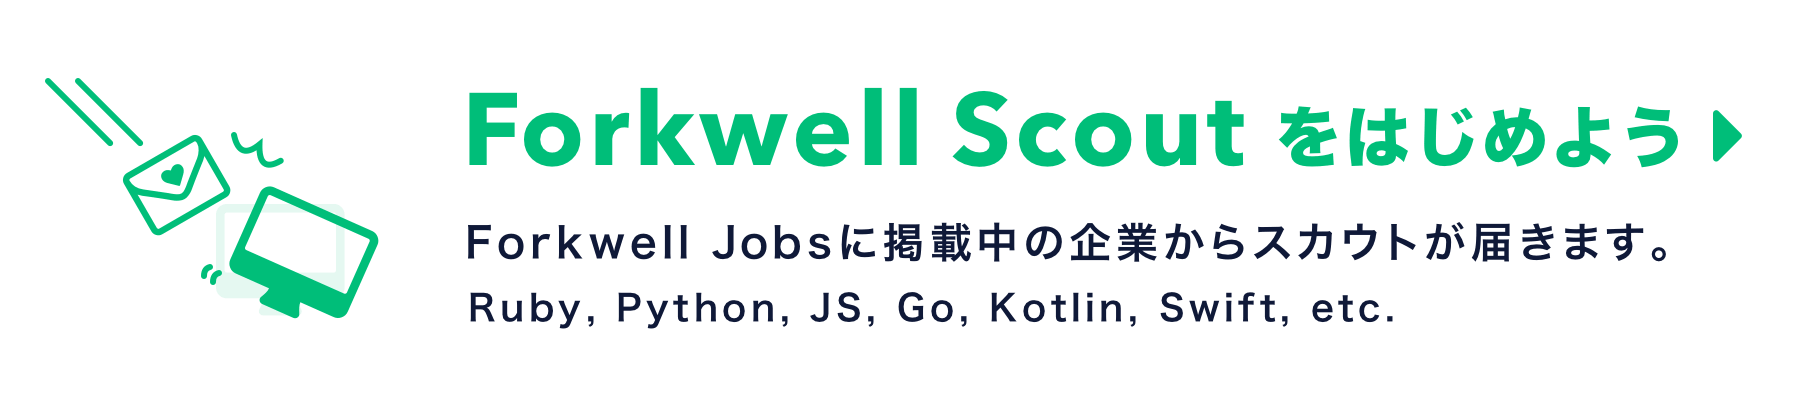 Forkwell Scout をはじめよう。Forkwell Jobsに掲載中の企業からスカウトが届きます。